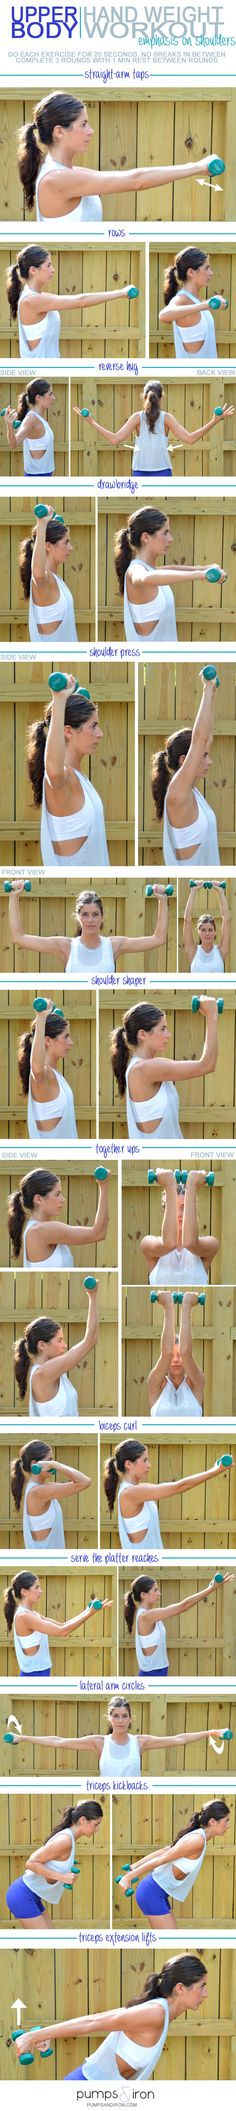 Fitness Motivation : Upper-Body Hand Weight Workout (emphasis on shoulders) Helps to keep strong thro. - All Fitness Fitness Workouts, Fitness Motivation, Sport Fitness, Fitness Diet, Fun Workouts, Yoga Fitness, Health Fitness, Workout Diet, Workout Routines